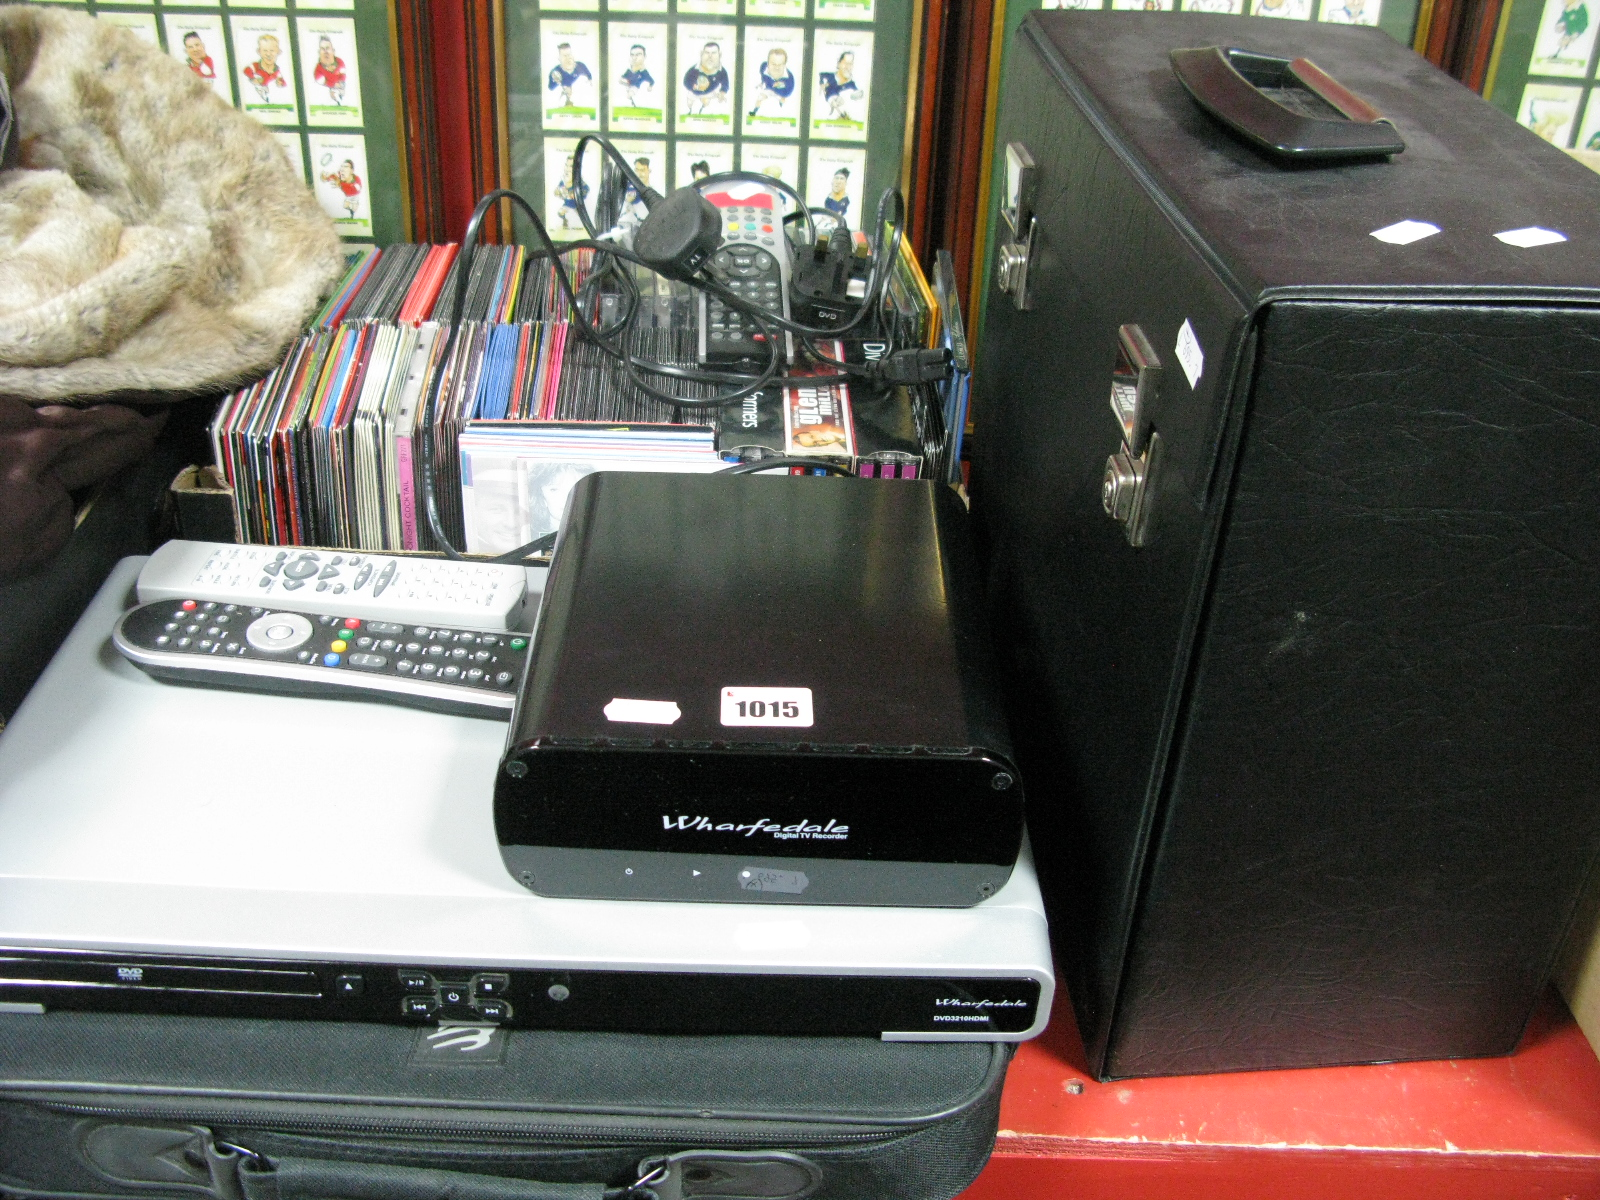 Lot 1015 - A Wharfdale Wdtr160 Digital TV Recorder, Wharfdale 3210 DVD player, DVD's, CD's, LP's in a case,